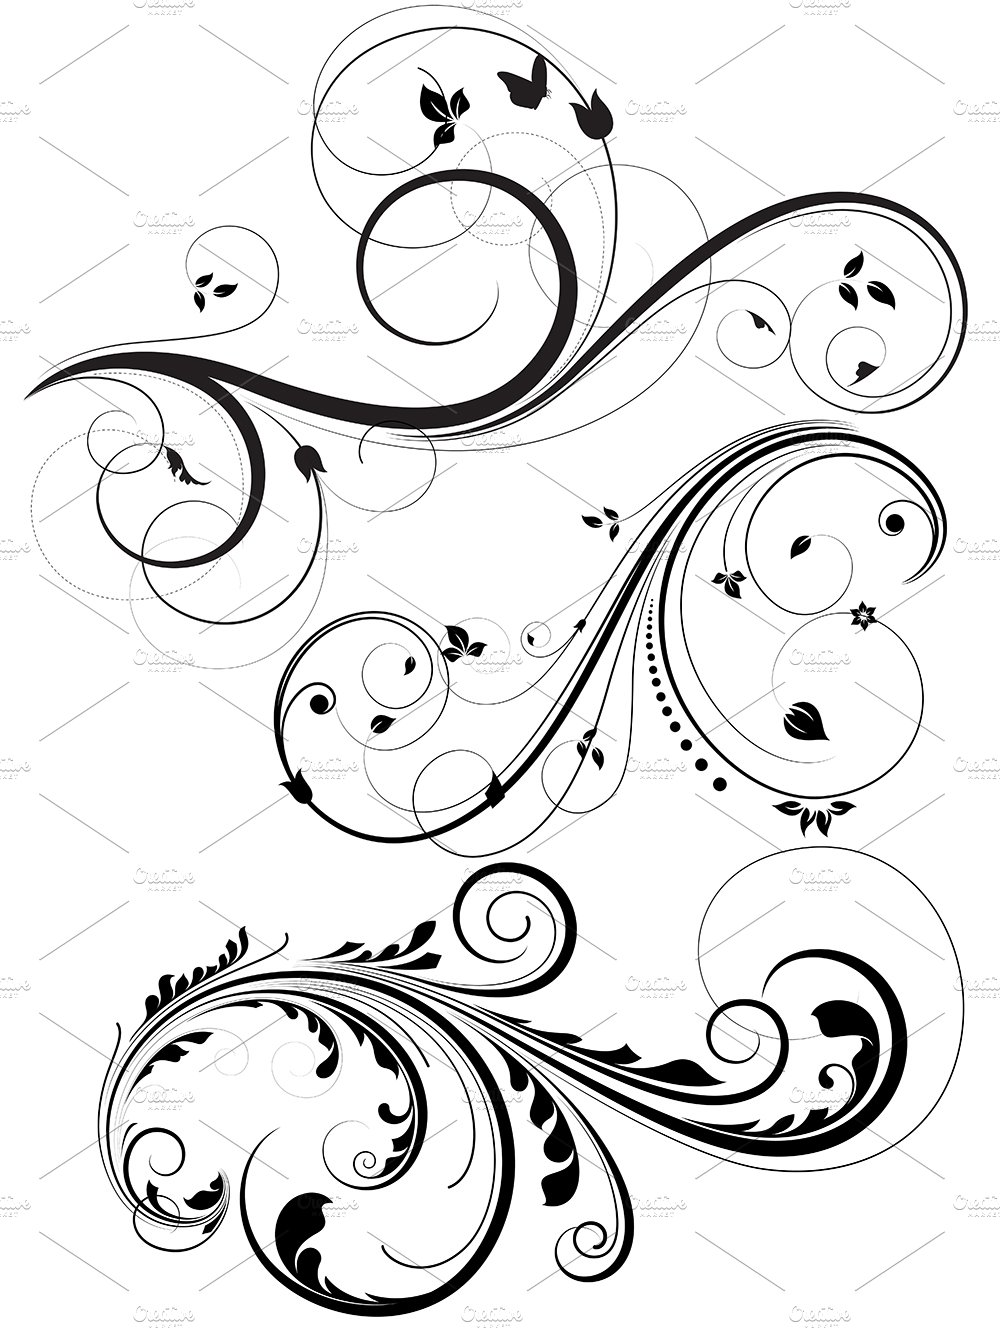 swirls brushes illustrations creative market. Black Bedroom Furniture Sets. Home Design Ideas